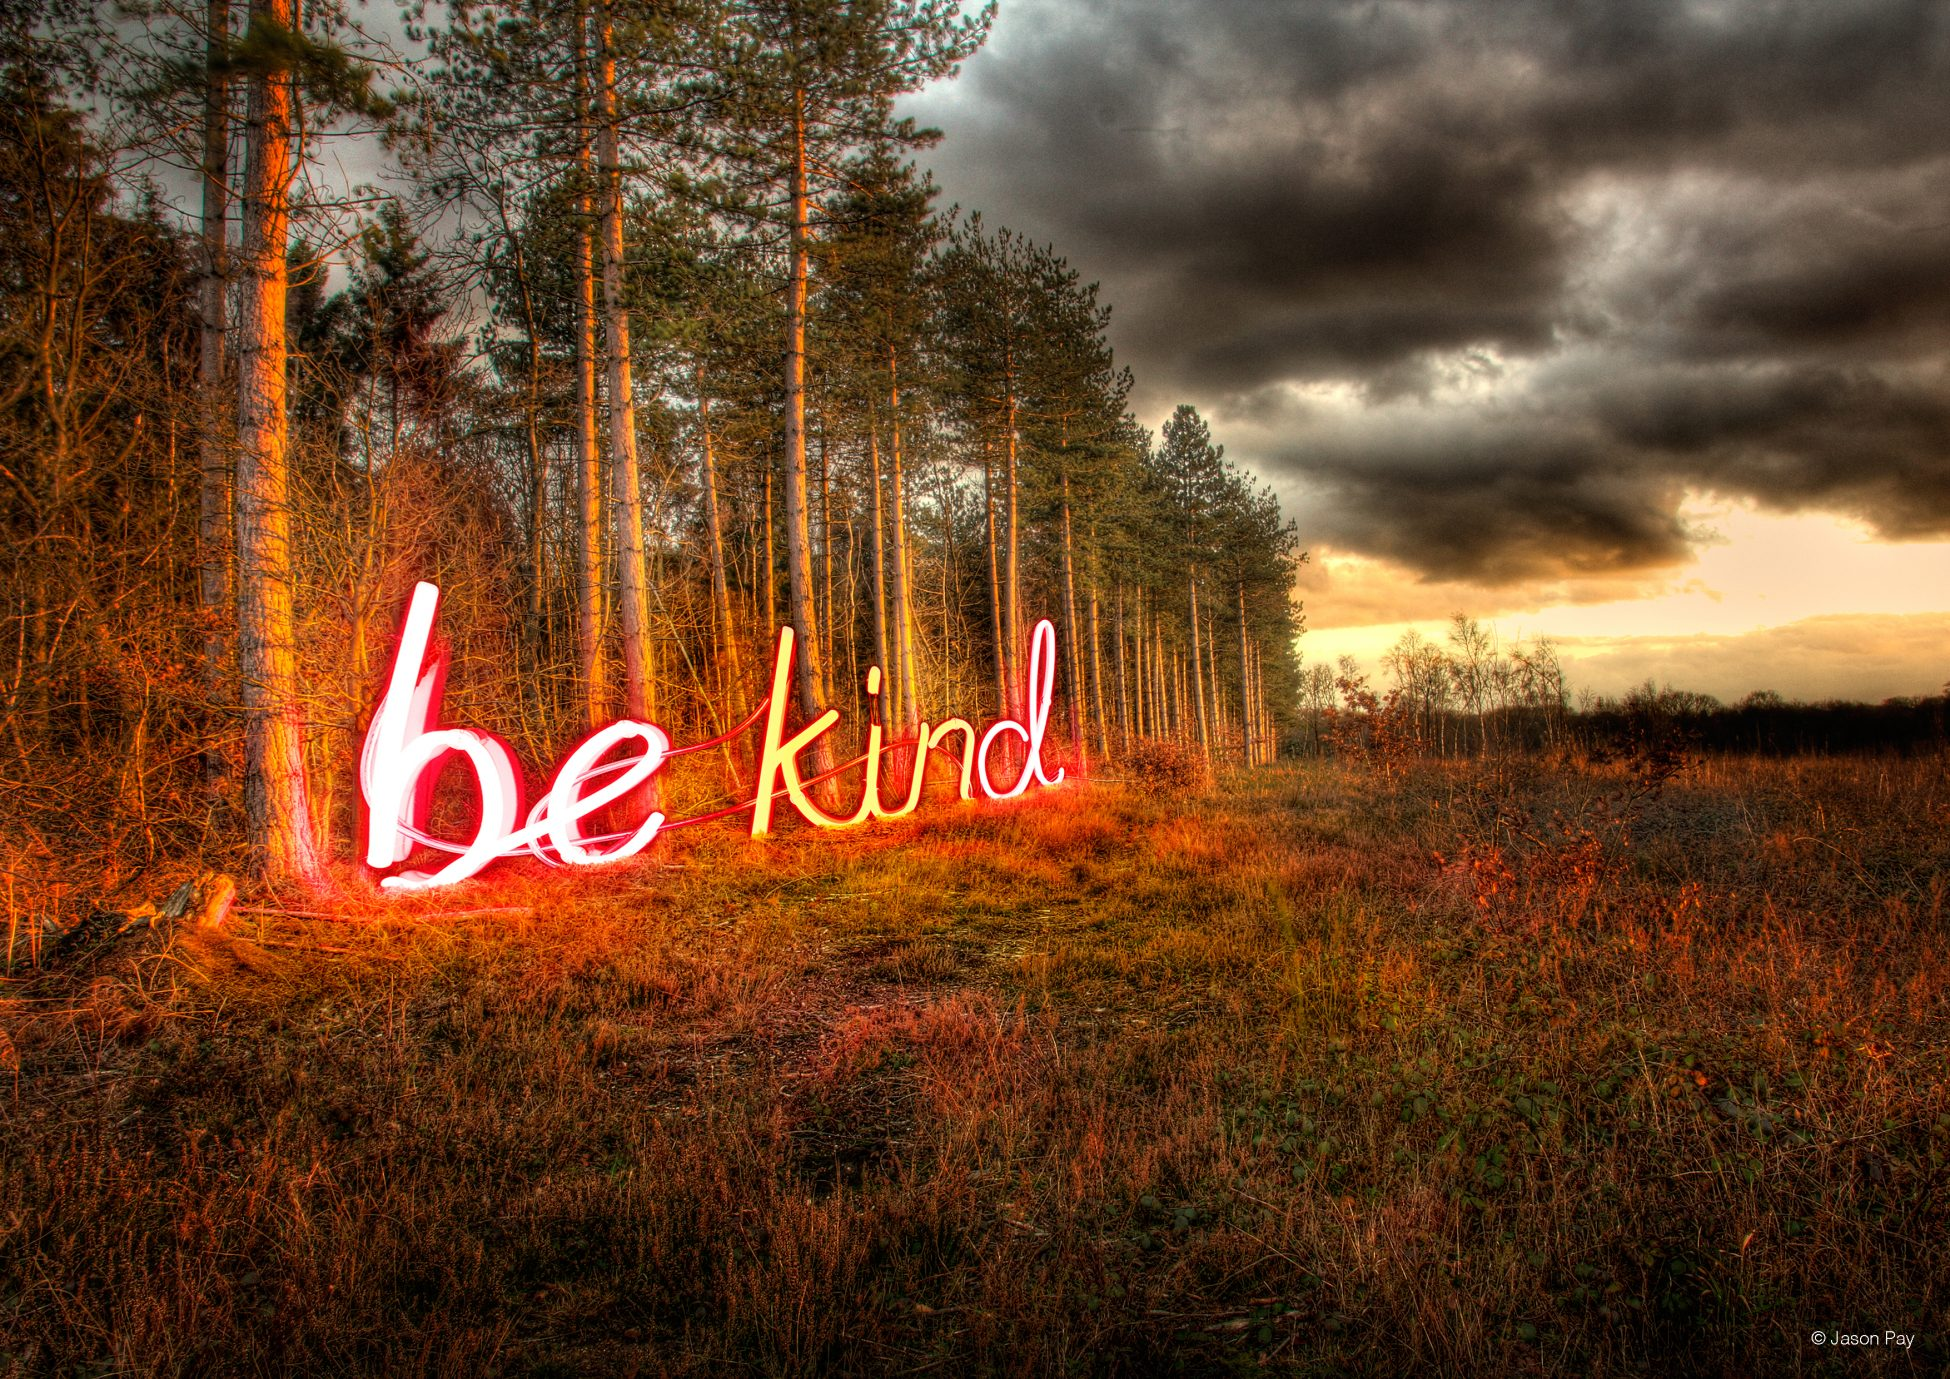 Digital artwork showing a photo of wild scrubland next to the edge of a forest. Along the tree line are giant neon letters that spell out 'be kind'. The orange and pink light from the sign is shining over the trees and scrubland.